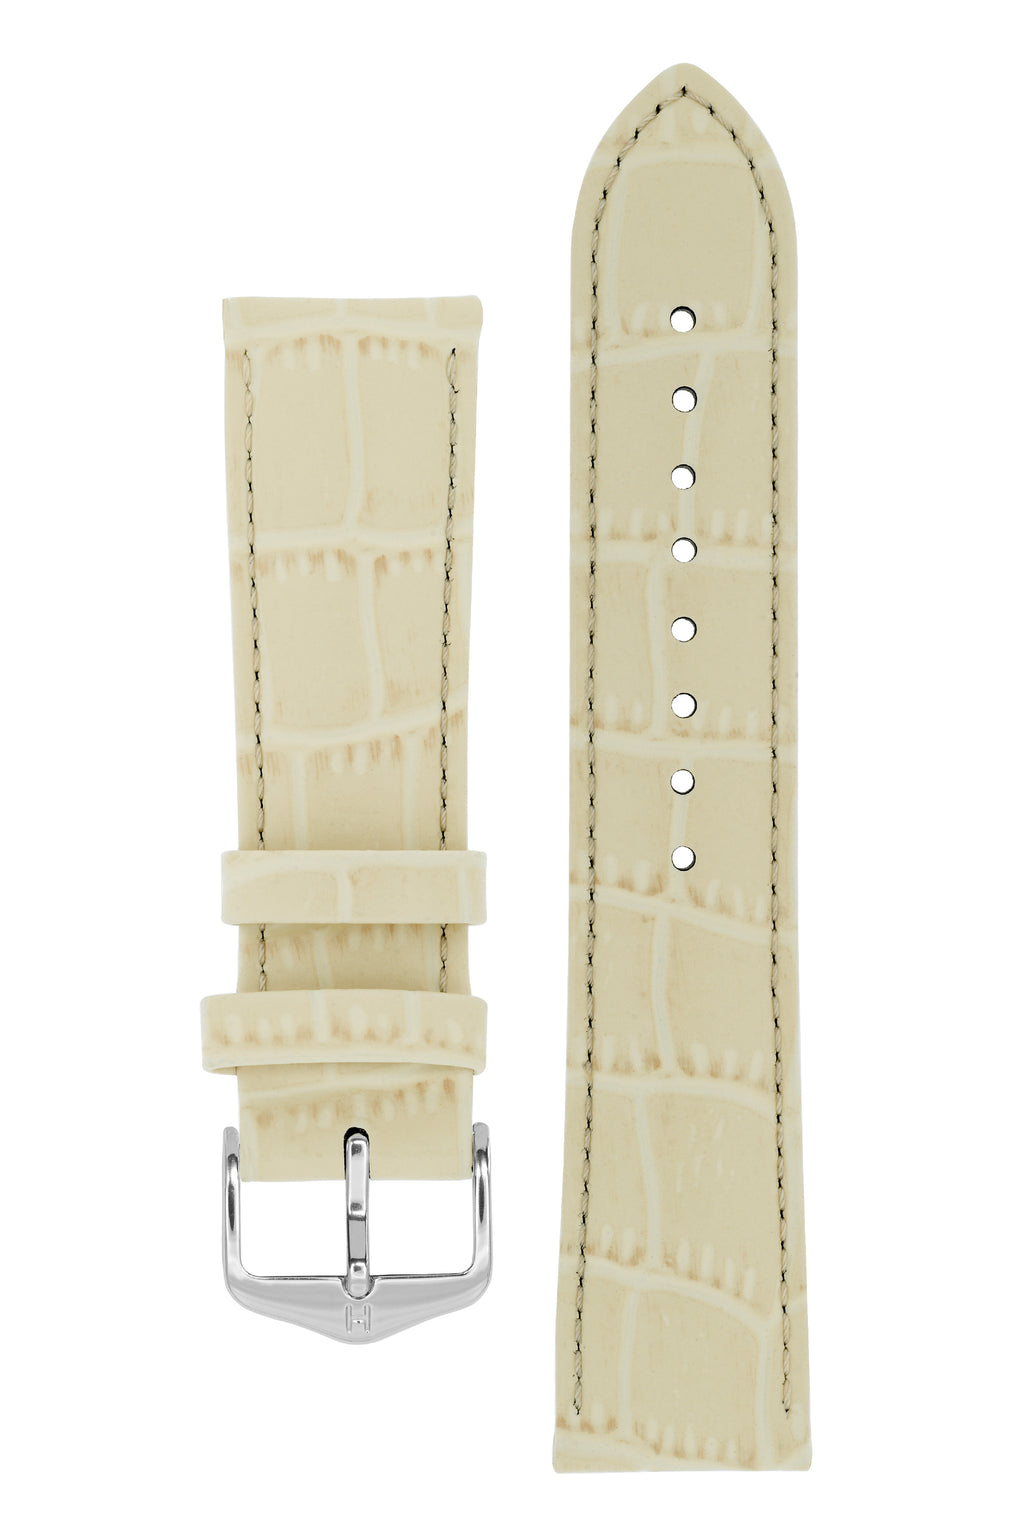 Hirsch LOUISIANALOOK Alligator Embossed Leather Watch Strap in BEIGE